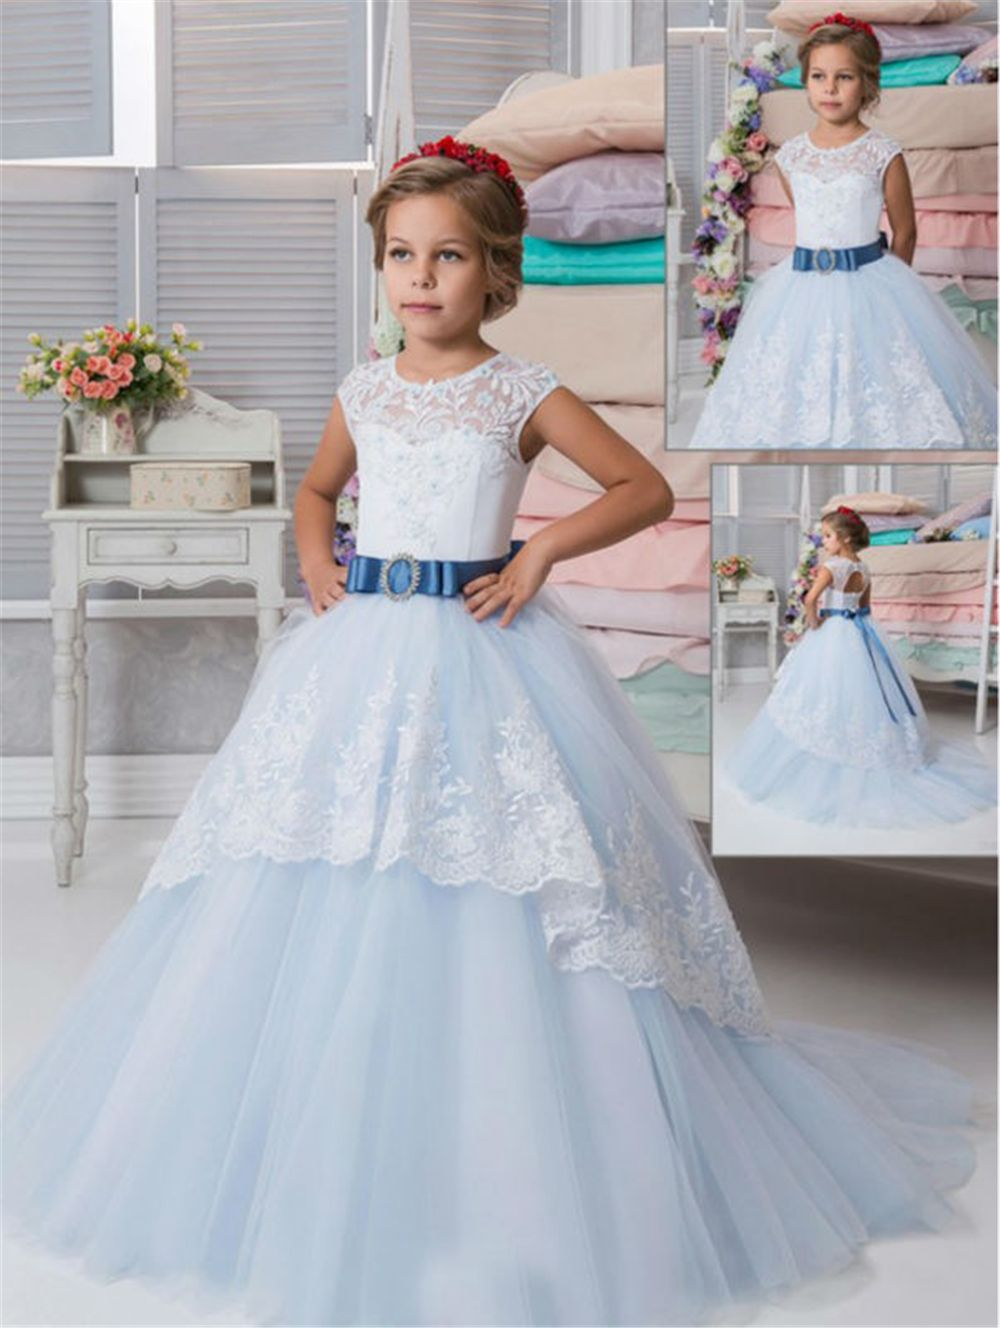 Mermaid Flower Dresses For Wedding Ankle Length Mother Daughter Ball Gown First Communion S